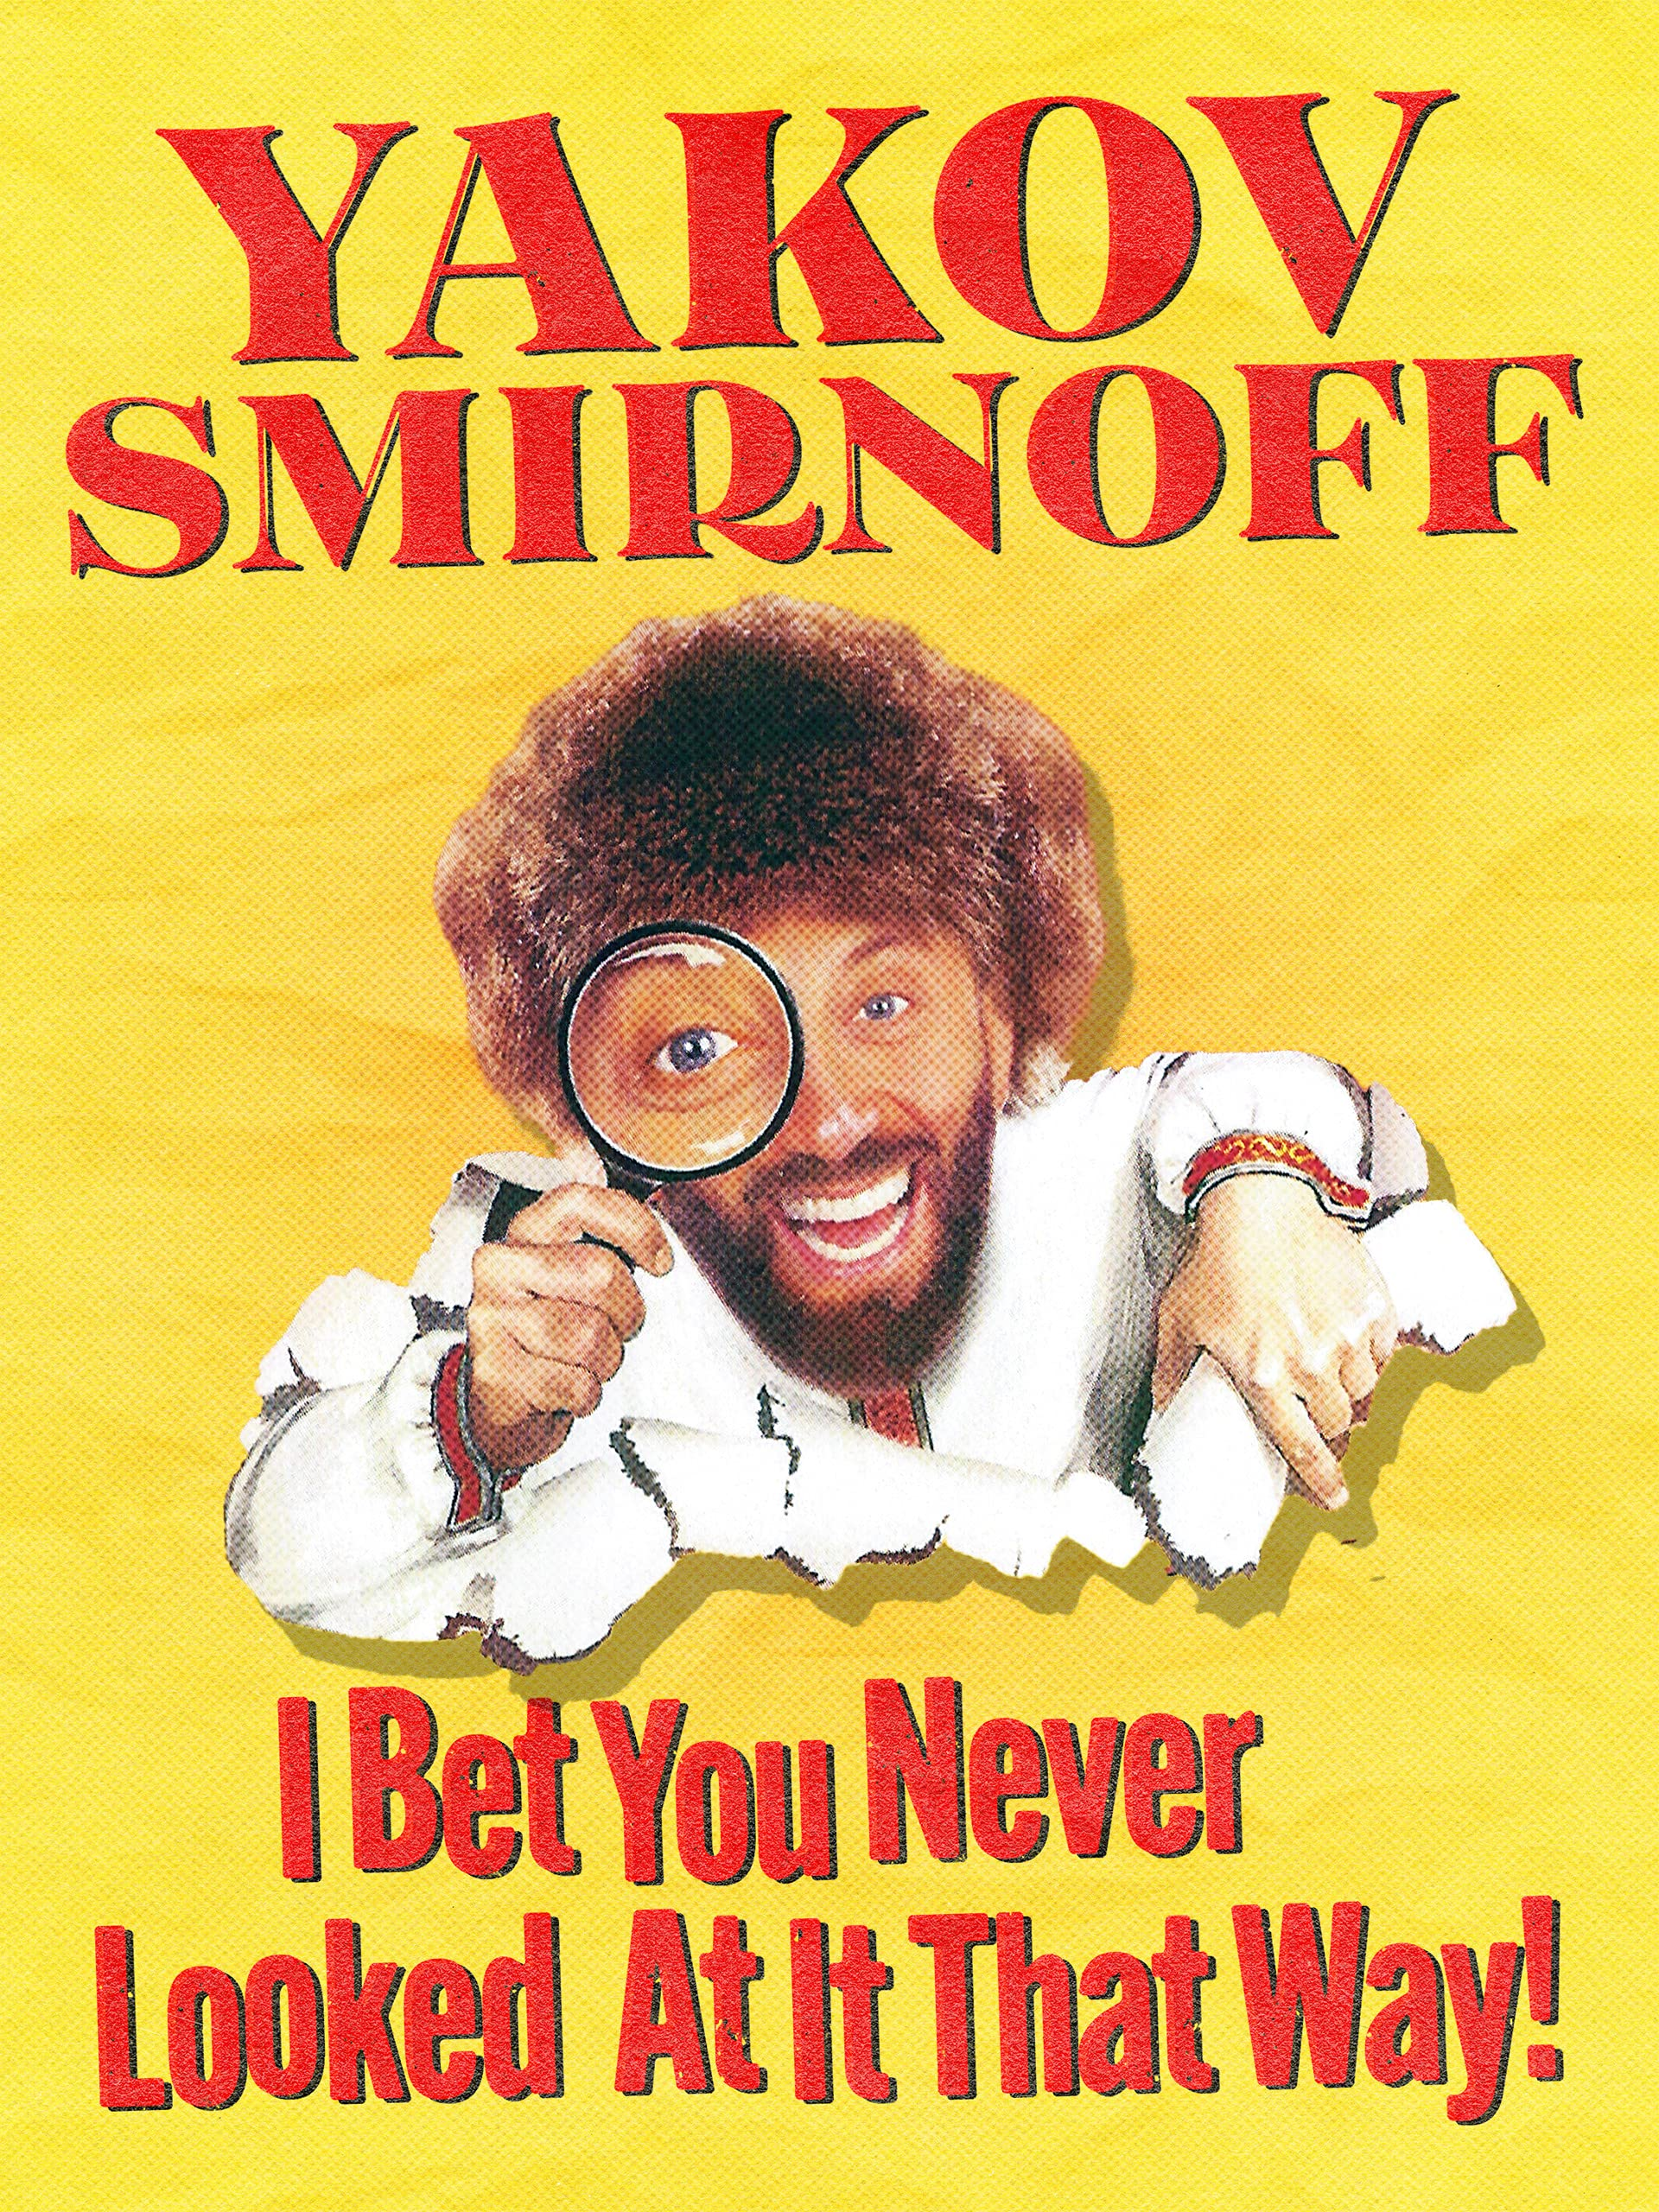 Yakov Smirnoff: I Bet You Never Looked At It That Way! on Amazon Prime Instant Video UK